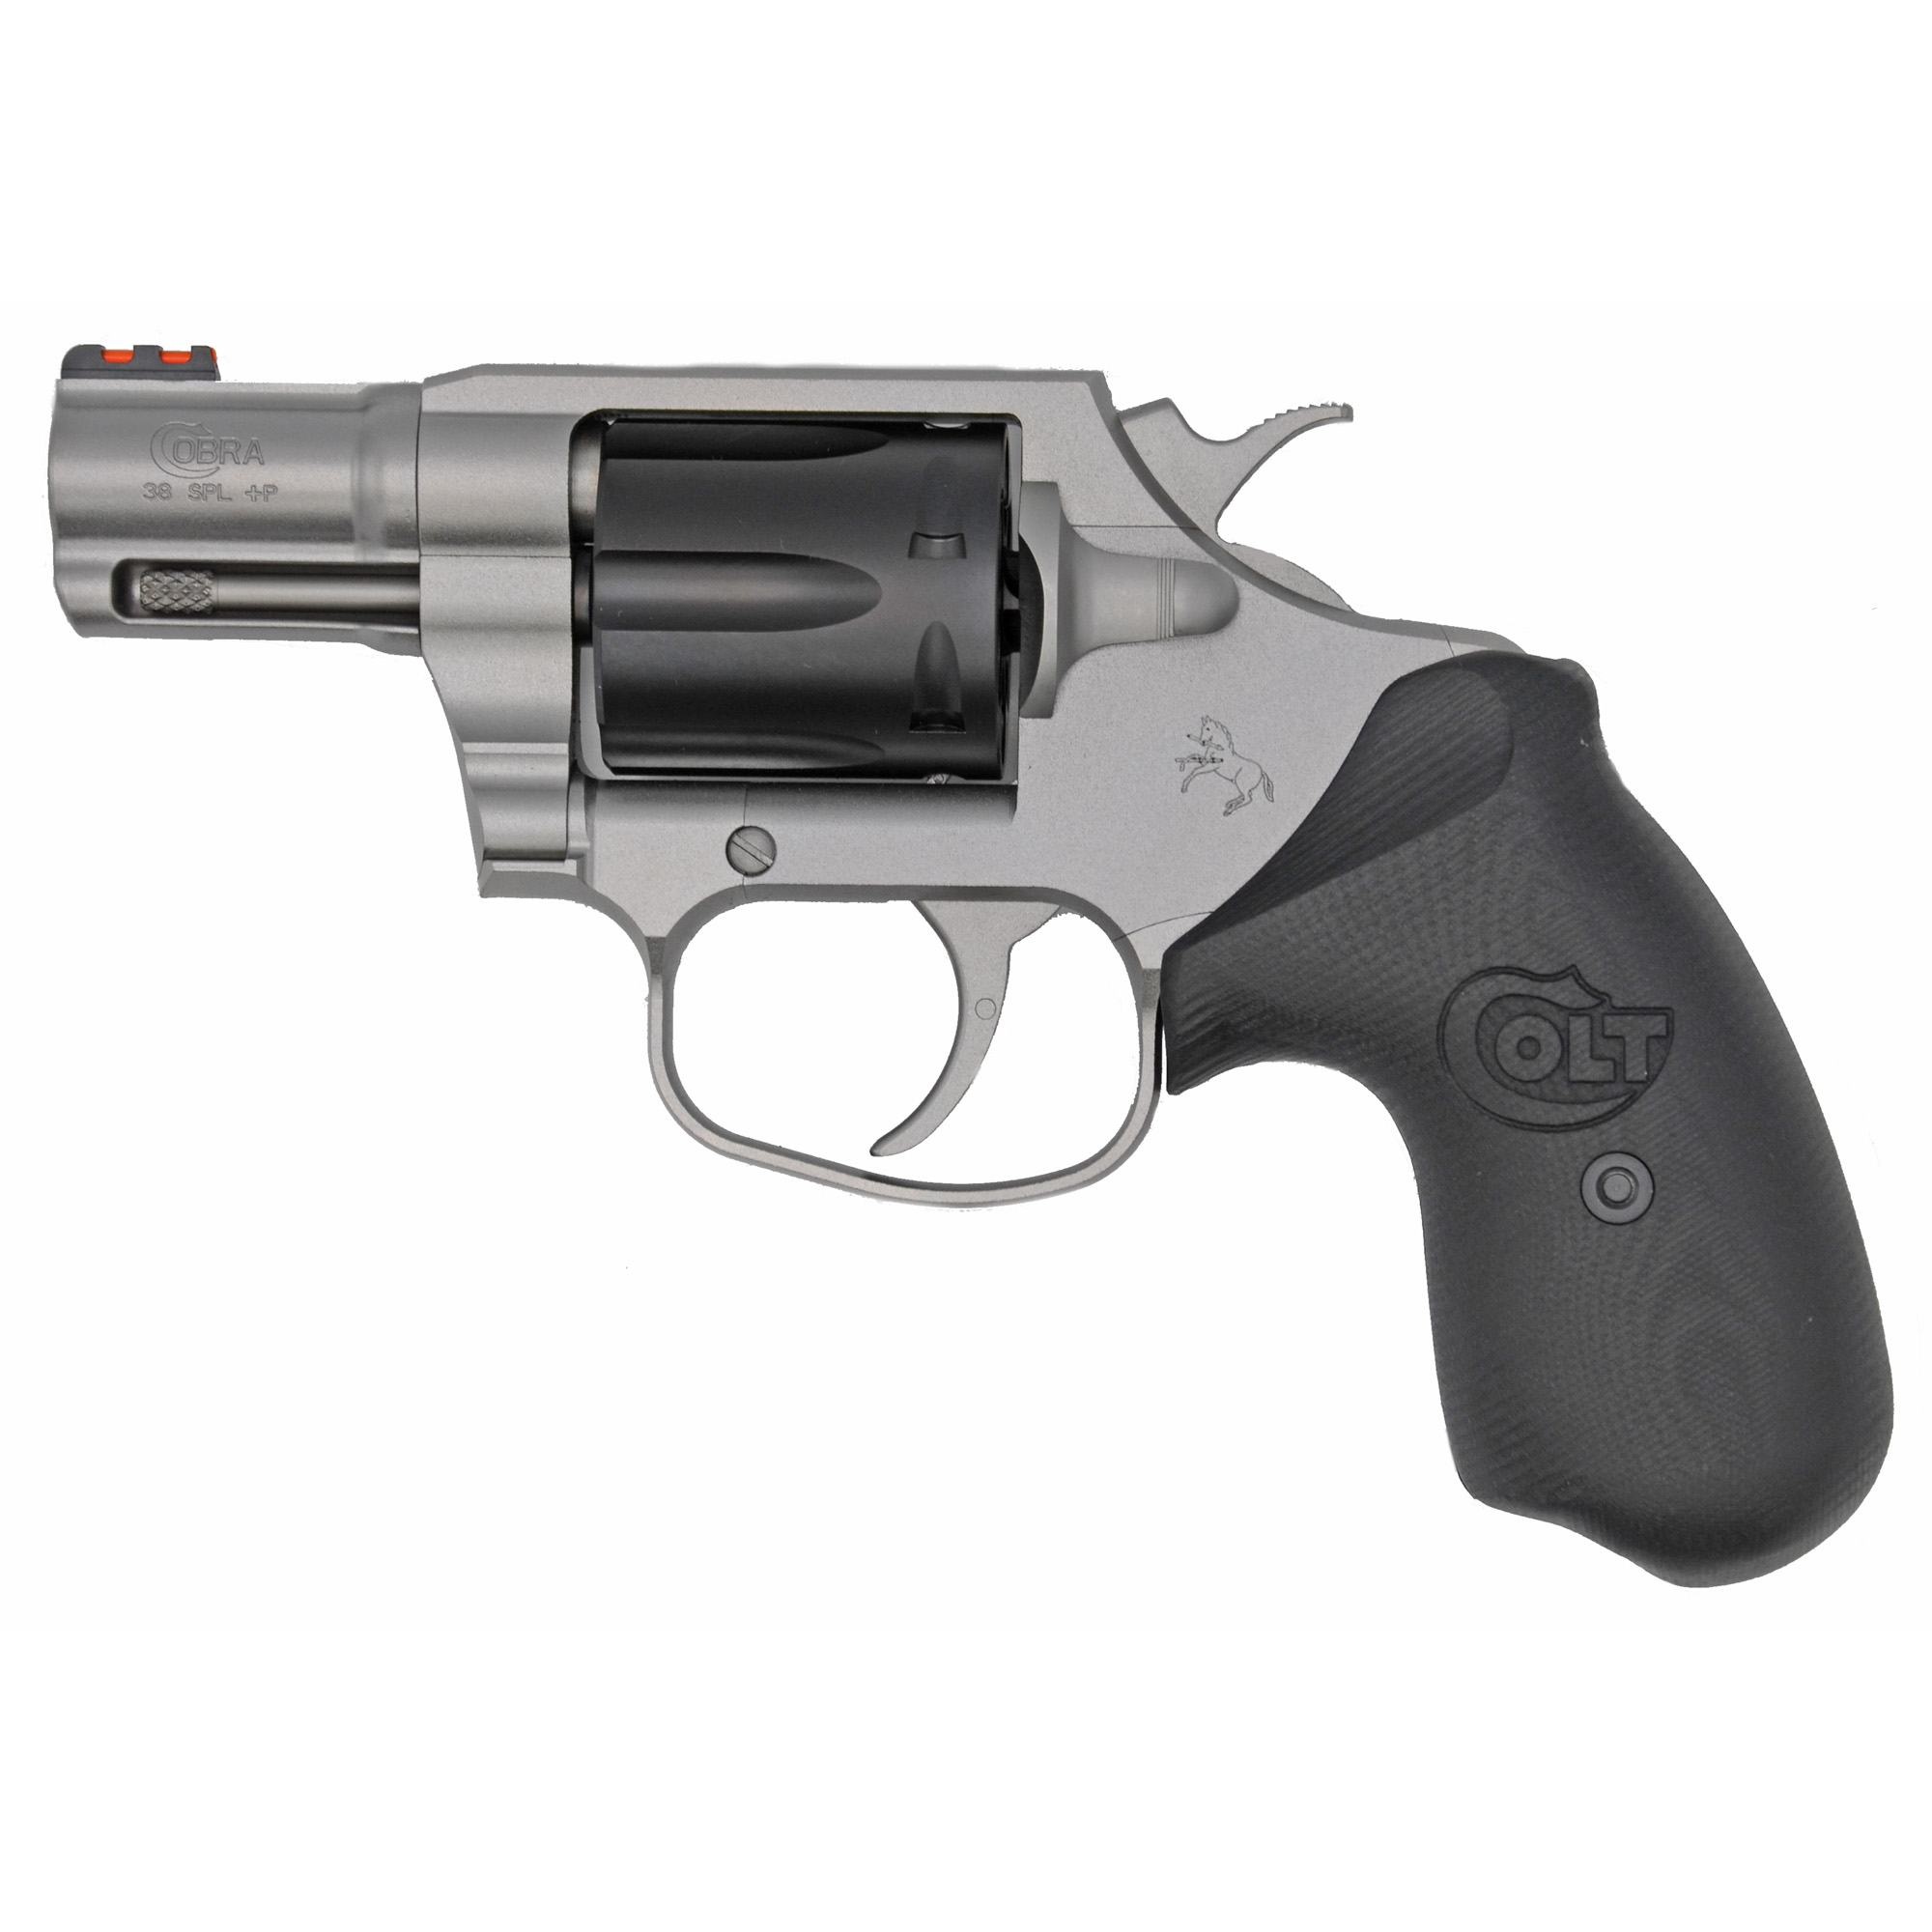 "The Colt Cobra(R) marks Colt's triumphant return to the world of double-action revolvers. Its small frame and 2"" barrel make it ideal for concealed carry. The Cobra(R) is chambered in .38 Special and is +P capable."